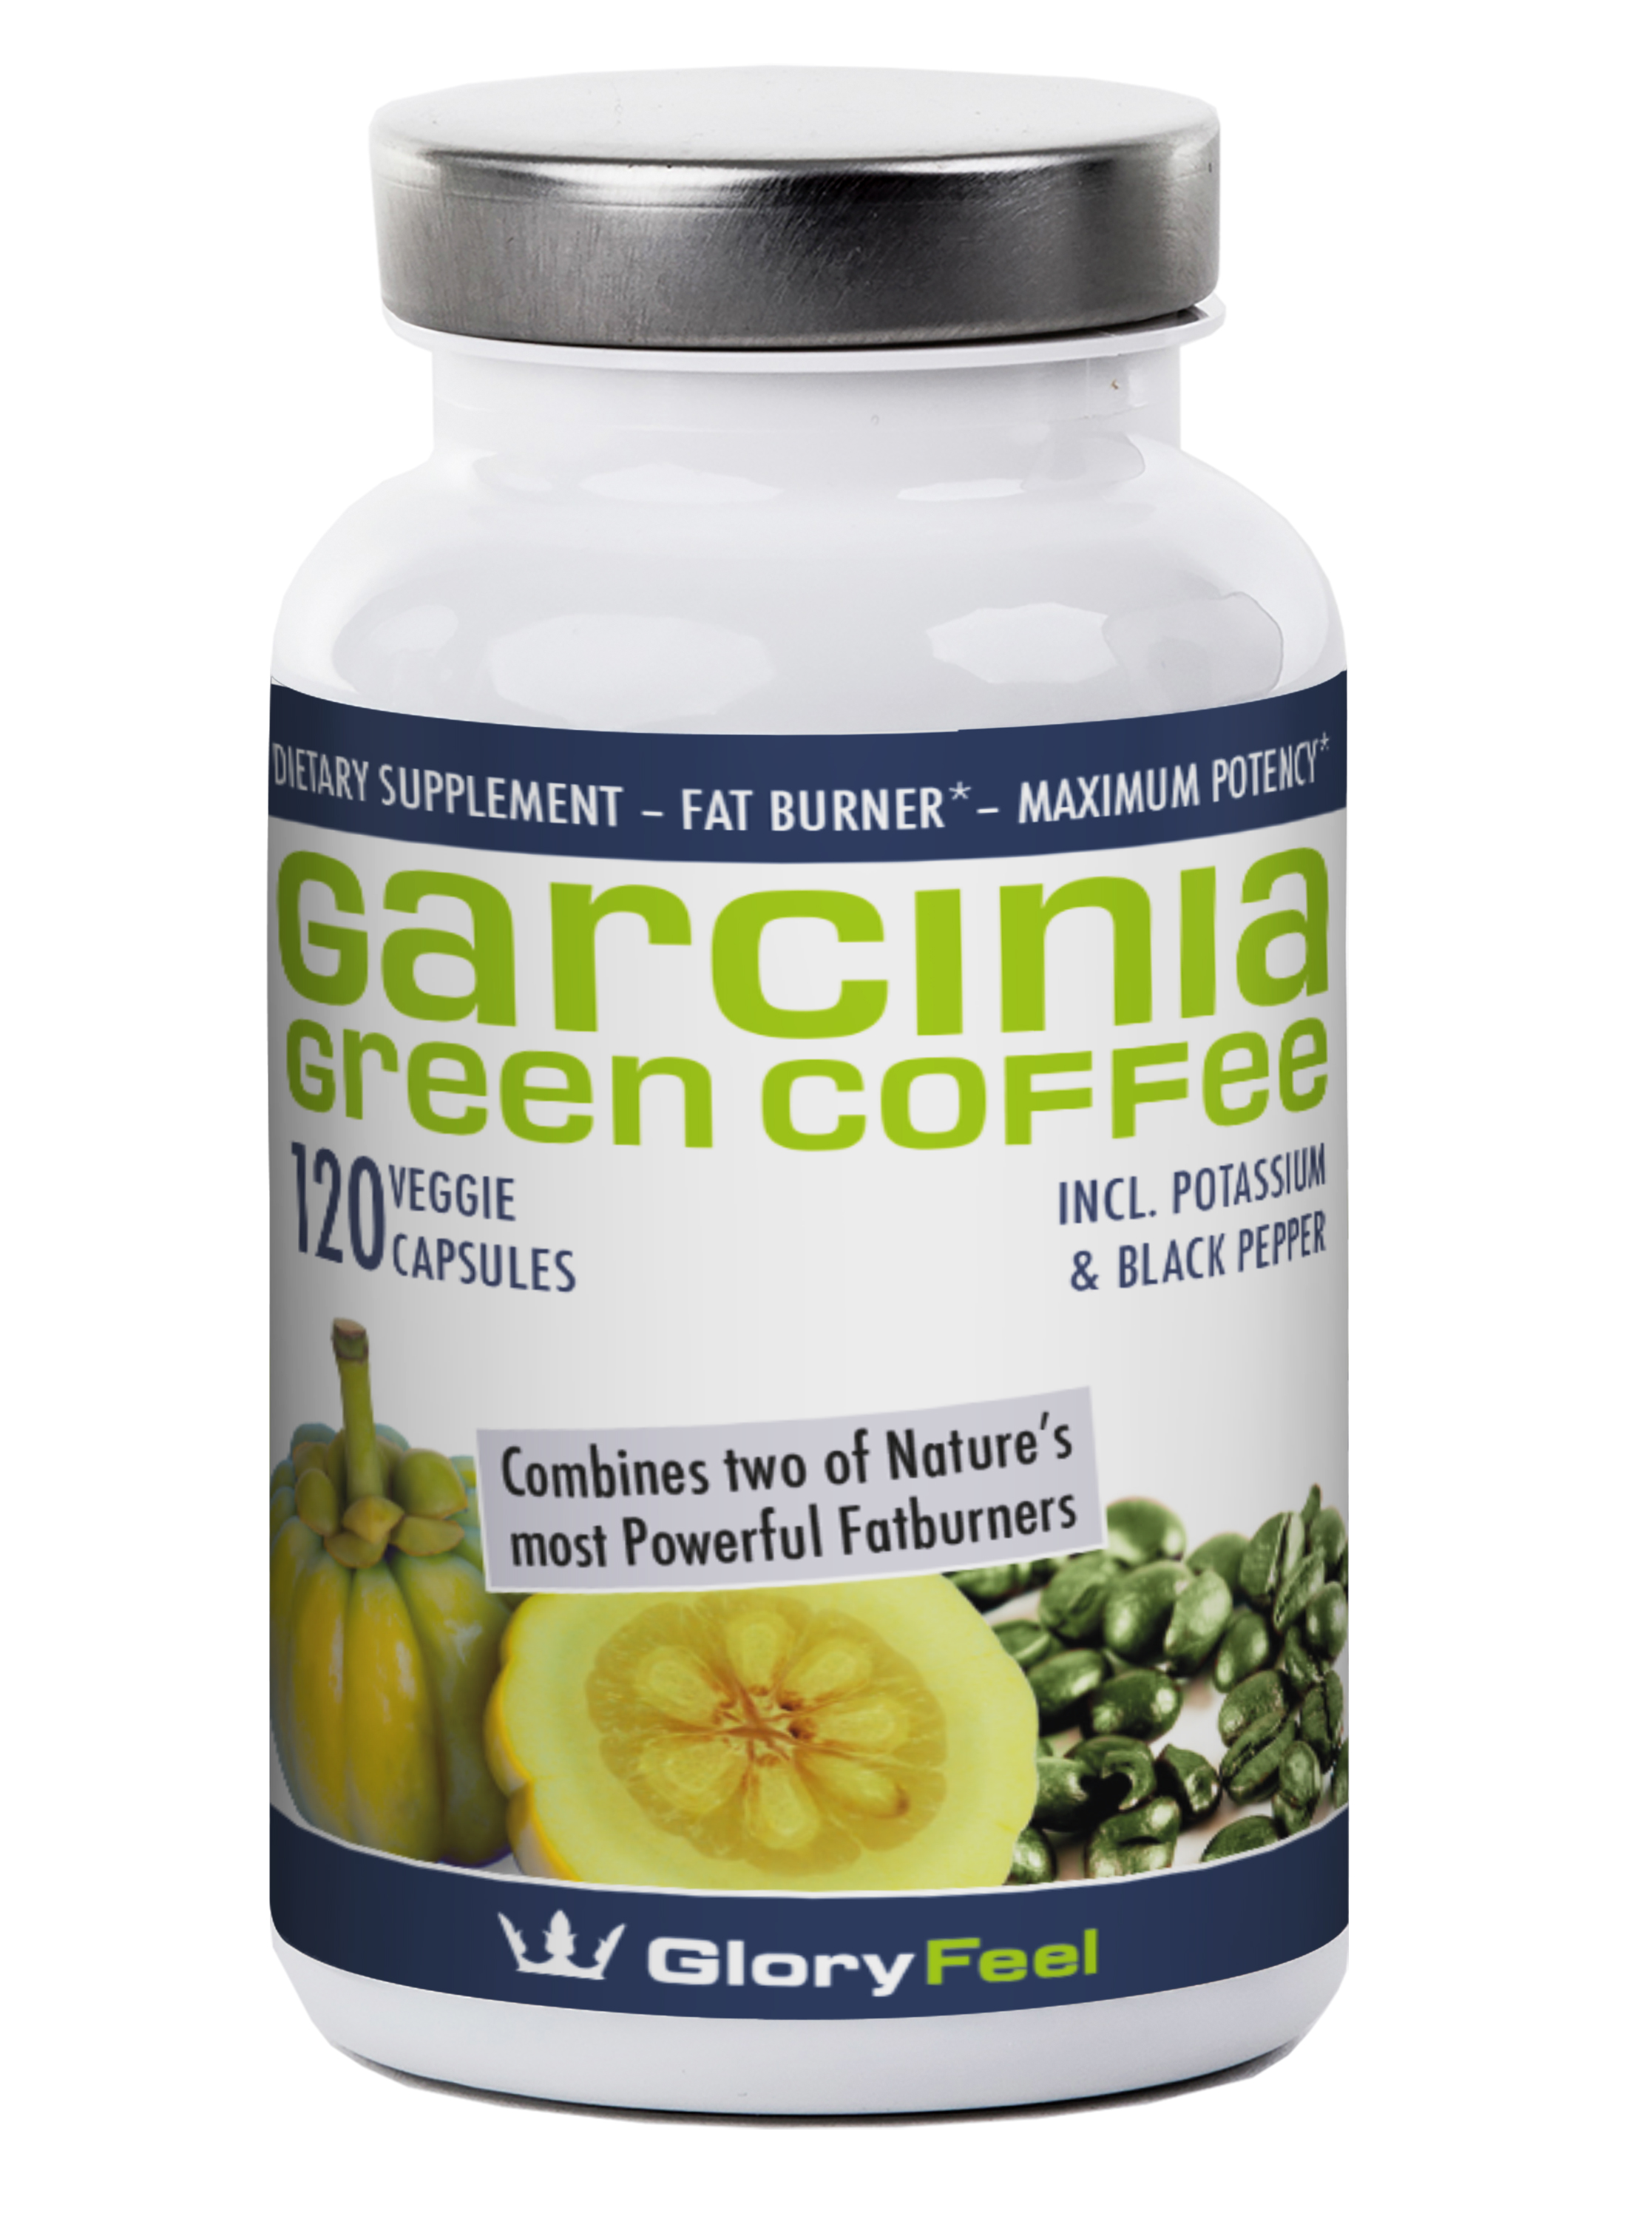 #gloryfeel – Garcinia Cambogia plus Green Coffee Bean Extract